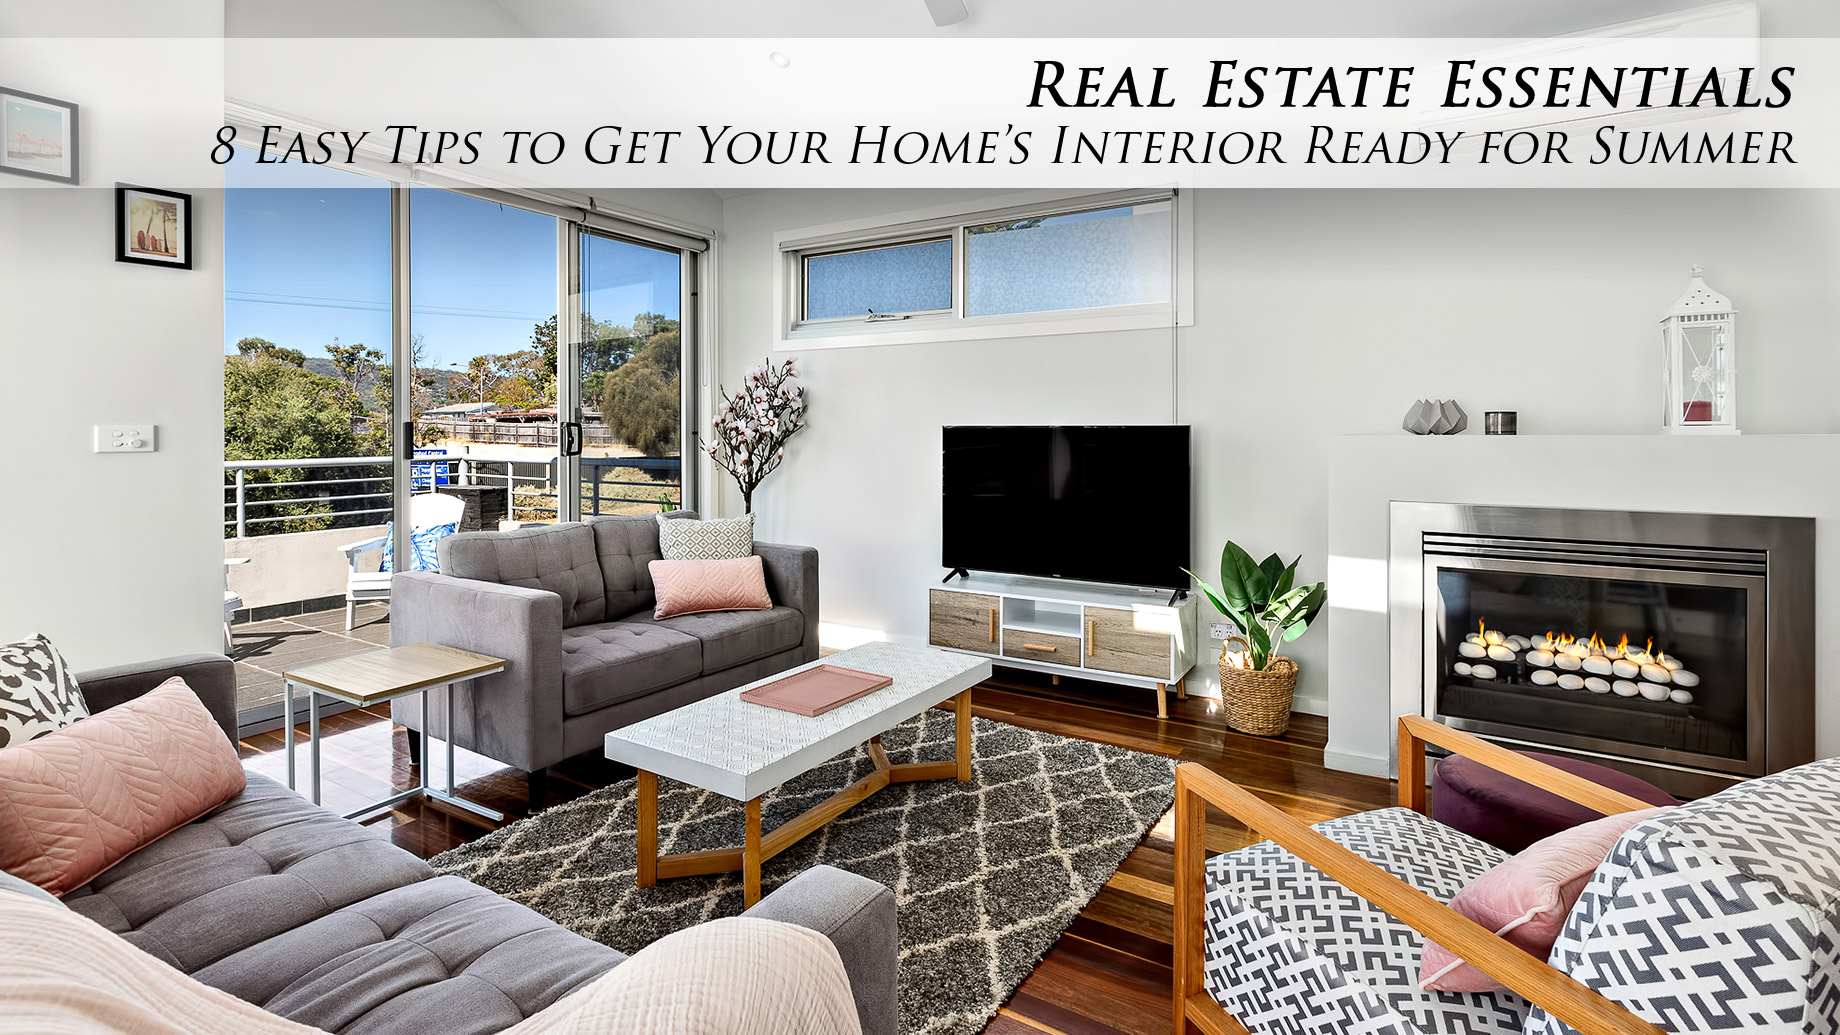 Real Estate Essentials - 8 Easy Tips to Get Your Homes Interior Ready for Summer